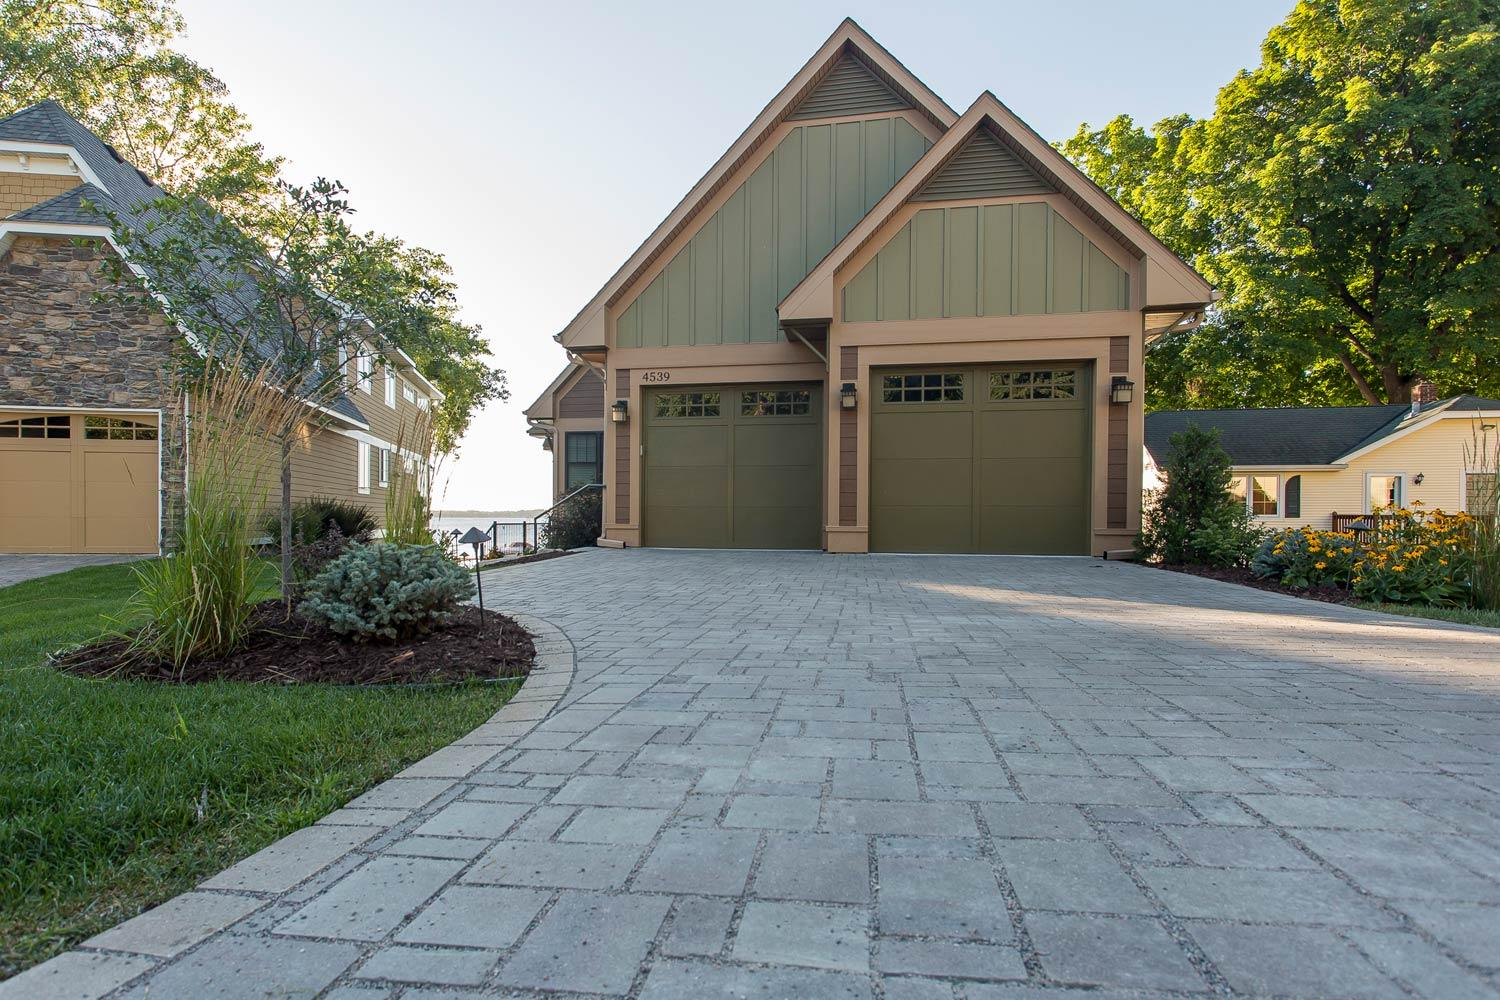 Permeable Paver Driveway on Lake Minnetonka in Mound